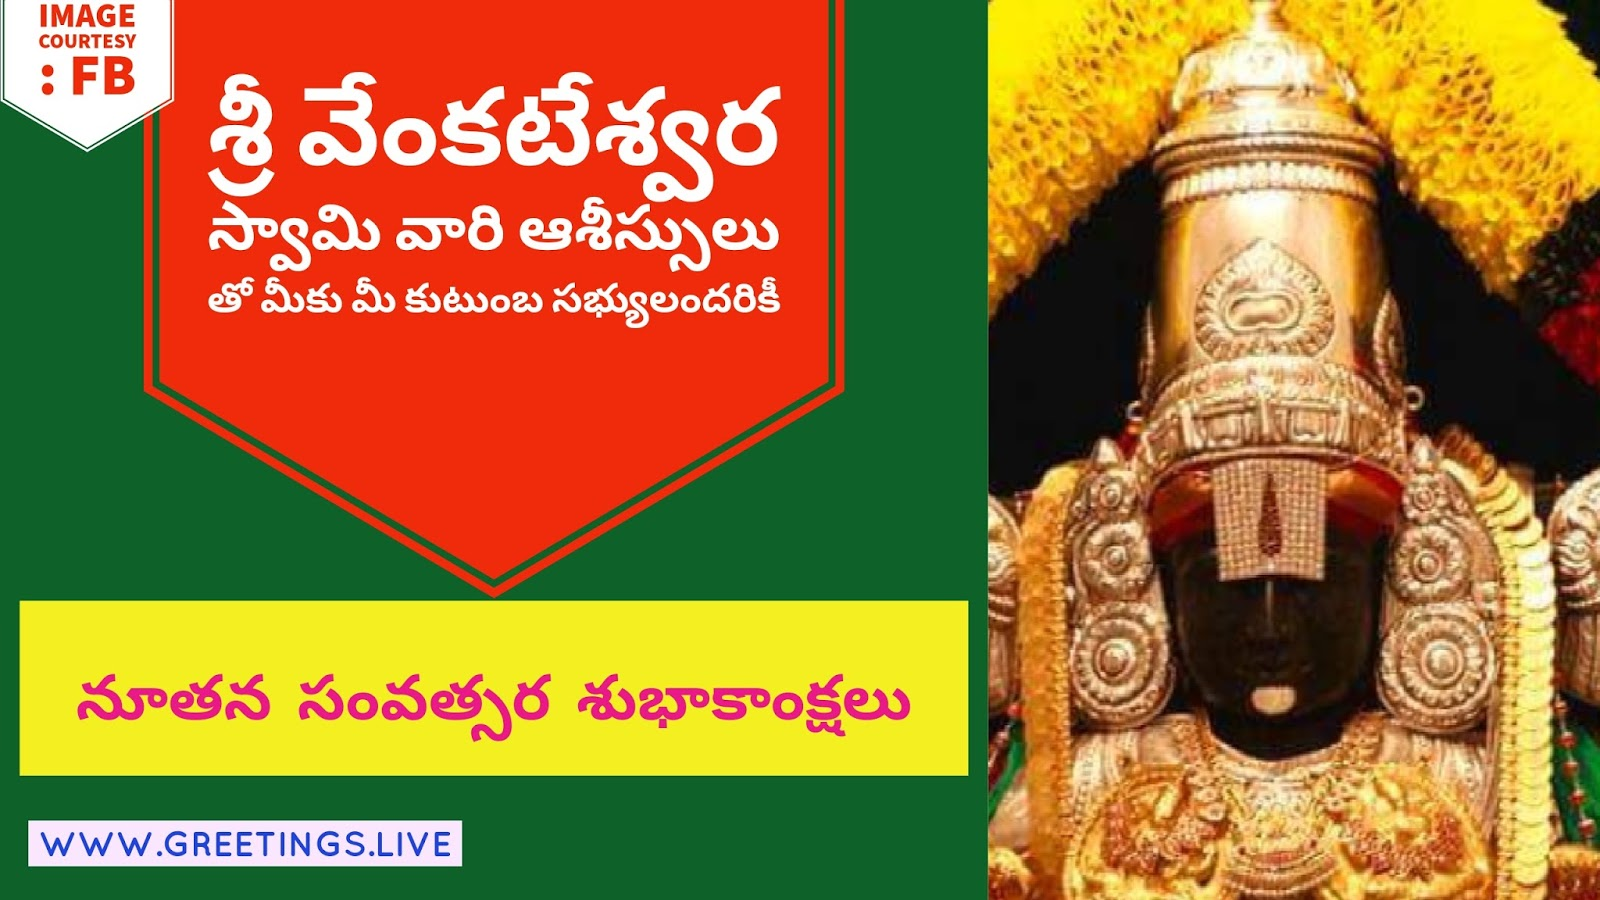 2018 new year wishes greetings lord sri venkateswara swamy sri venkateswara swamy ultra hd greetings in telugu language kristyandbryce Image collections